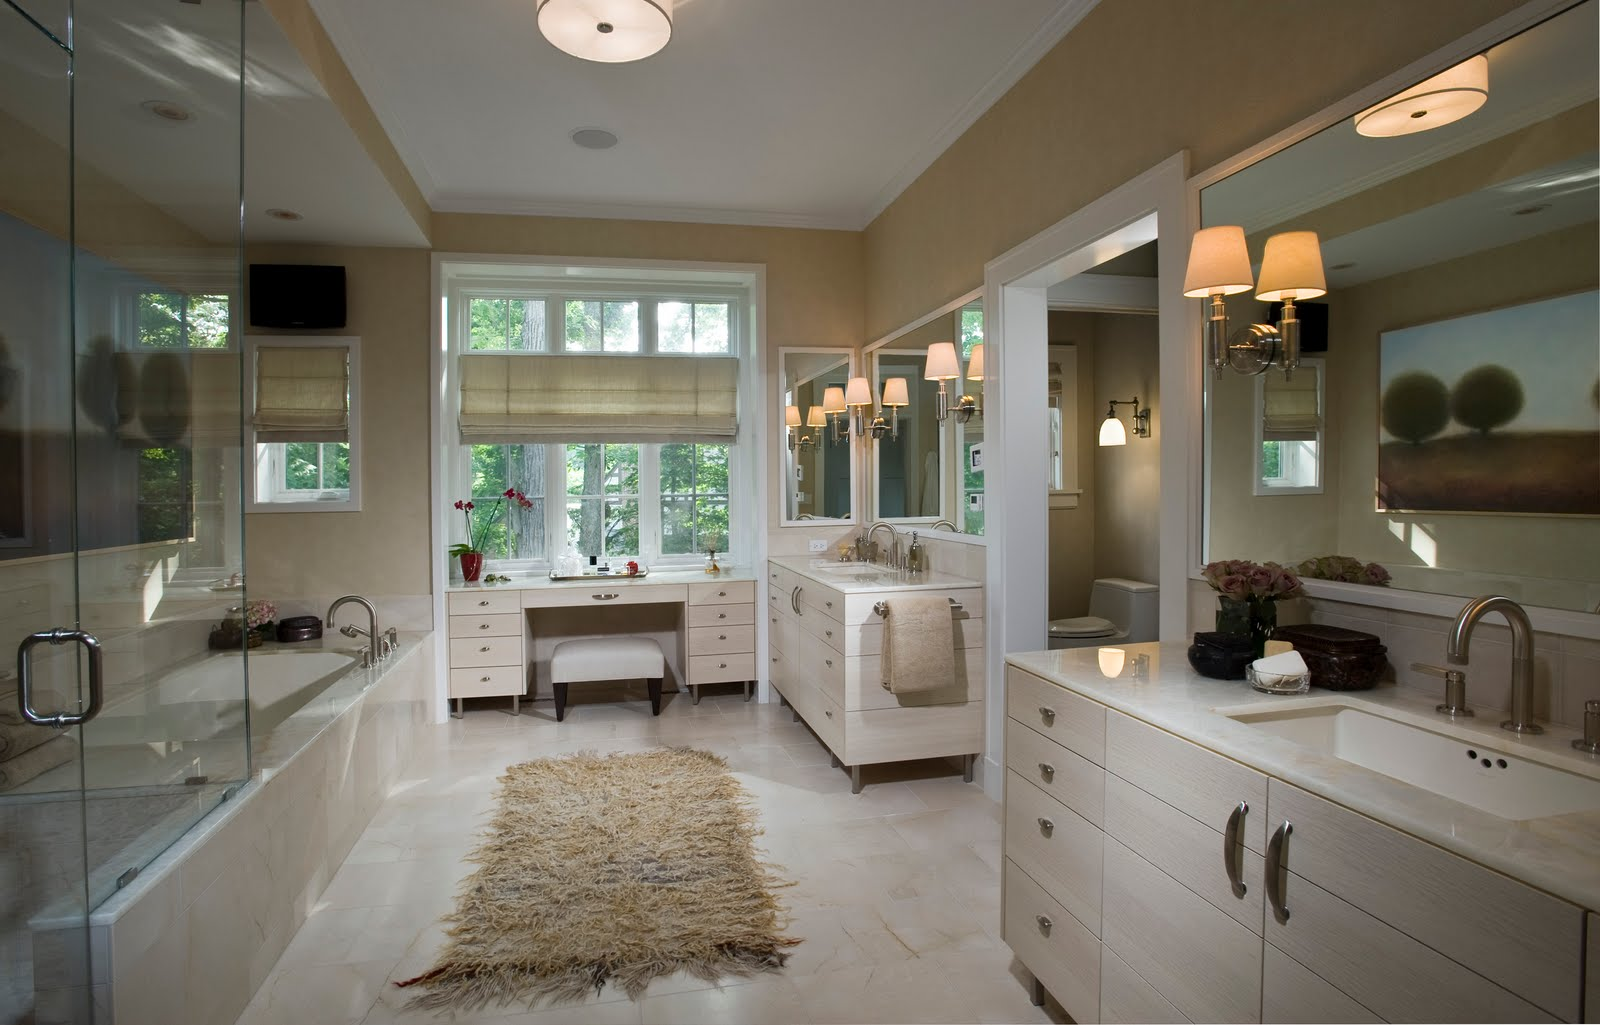 World of architecture 17 interesting bathroom designs for Amazing bathroom remodels